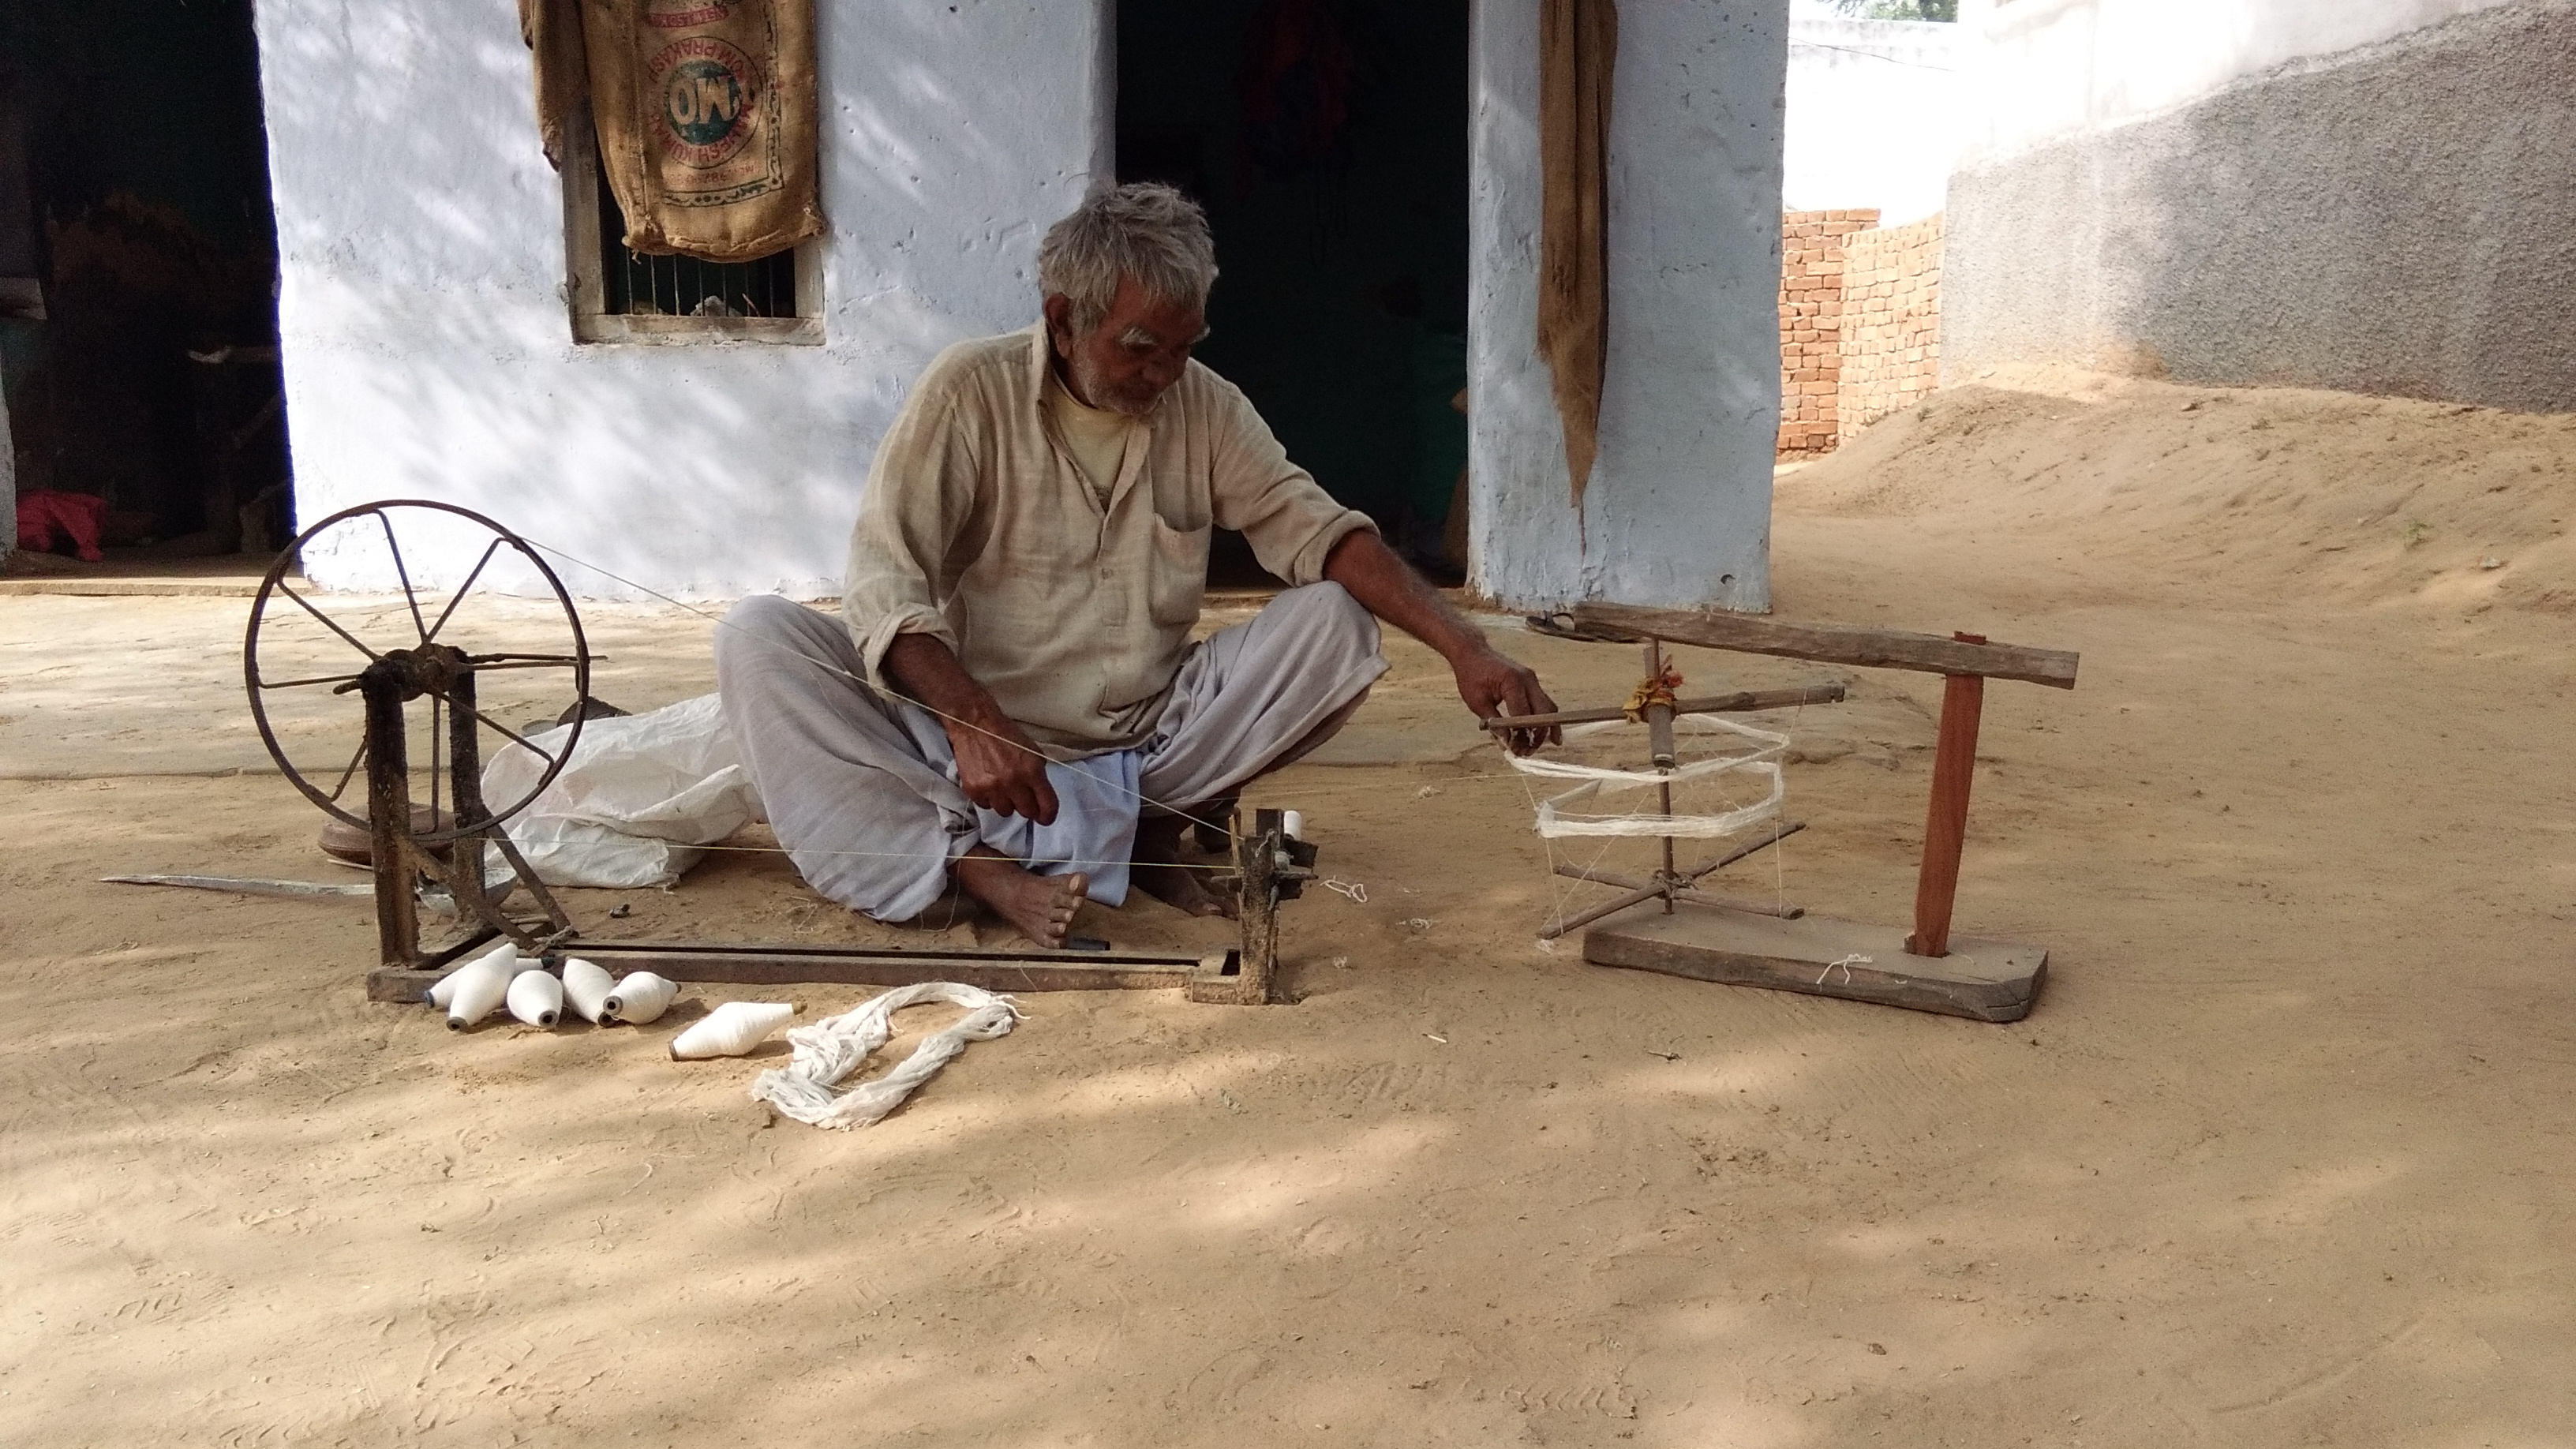 An Old Man Spinning Cotton